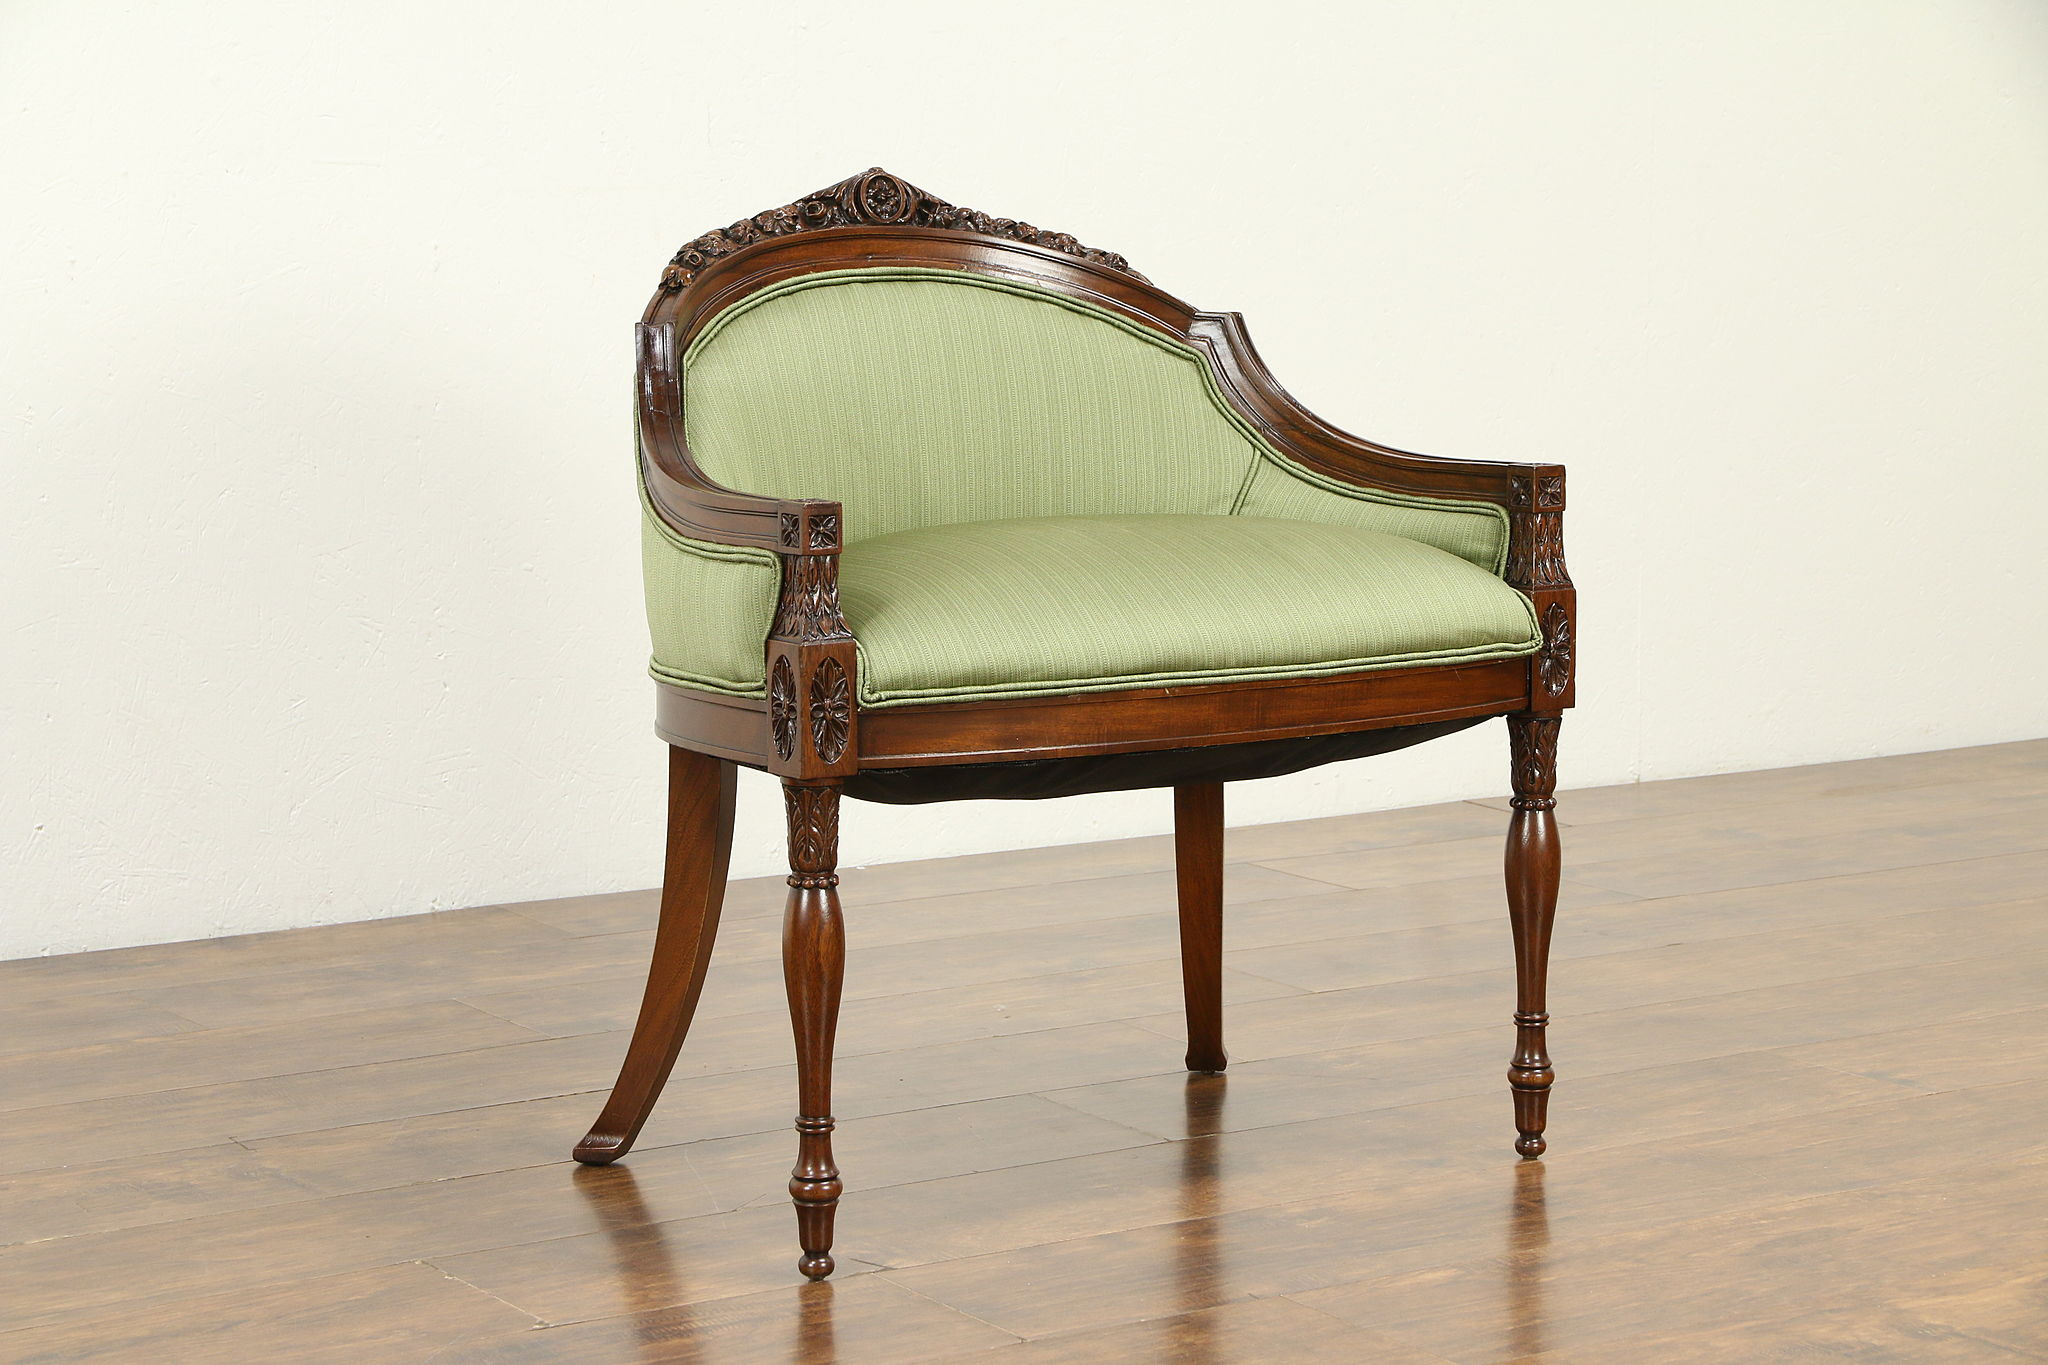 Sold French Design Antique Boudoir Chair Or Vanity Bench New Upholstery 33020 Harp Gallery Antiques Furniture